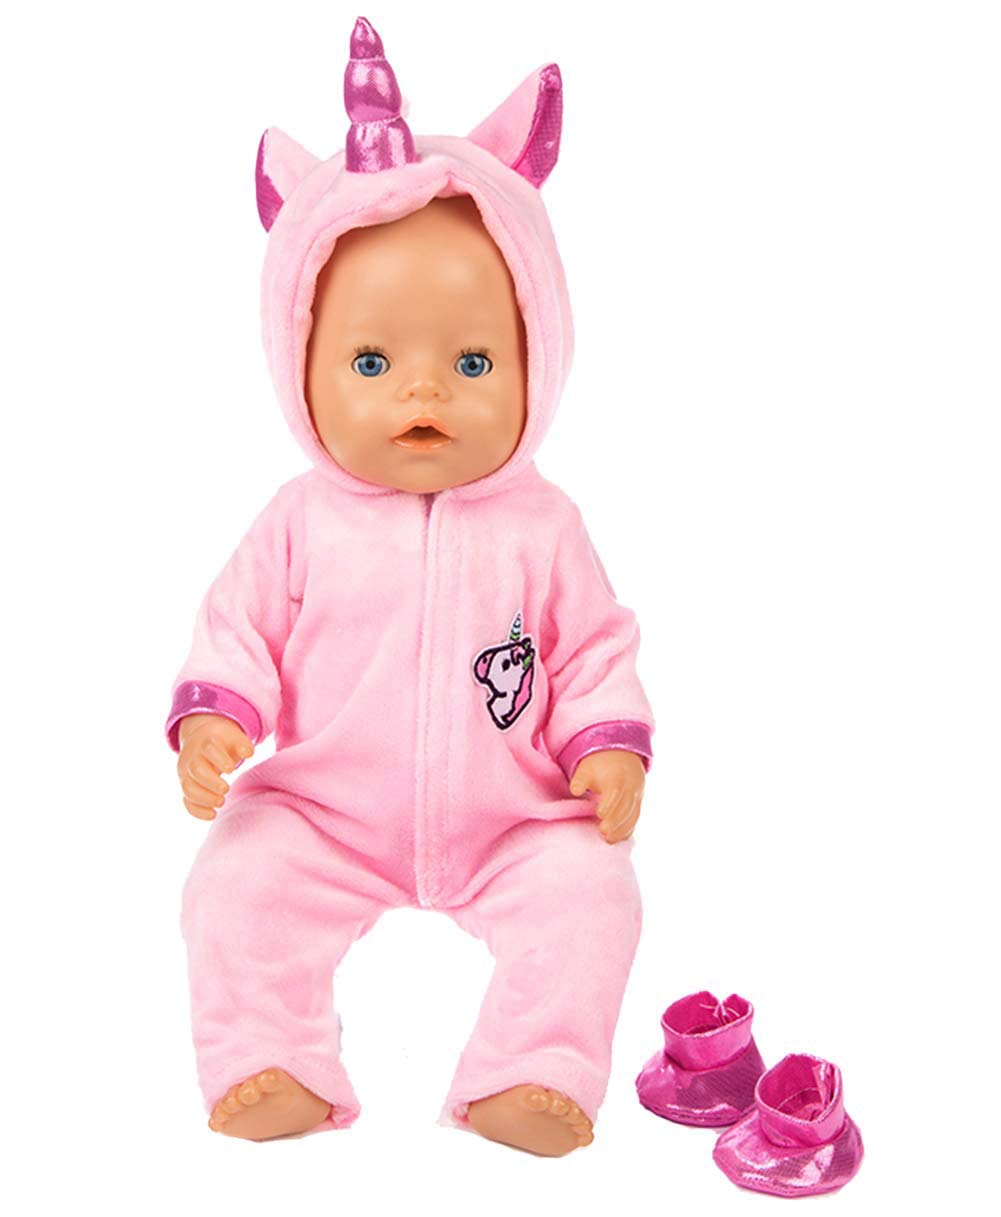 ebuddy 2pc/Set Unicorn Costume Jumpsuit Doll Clothes with Shoes for 43 cm New Born Baby Dolls/ 15 inch Bitty Baby Dolls